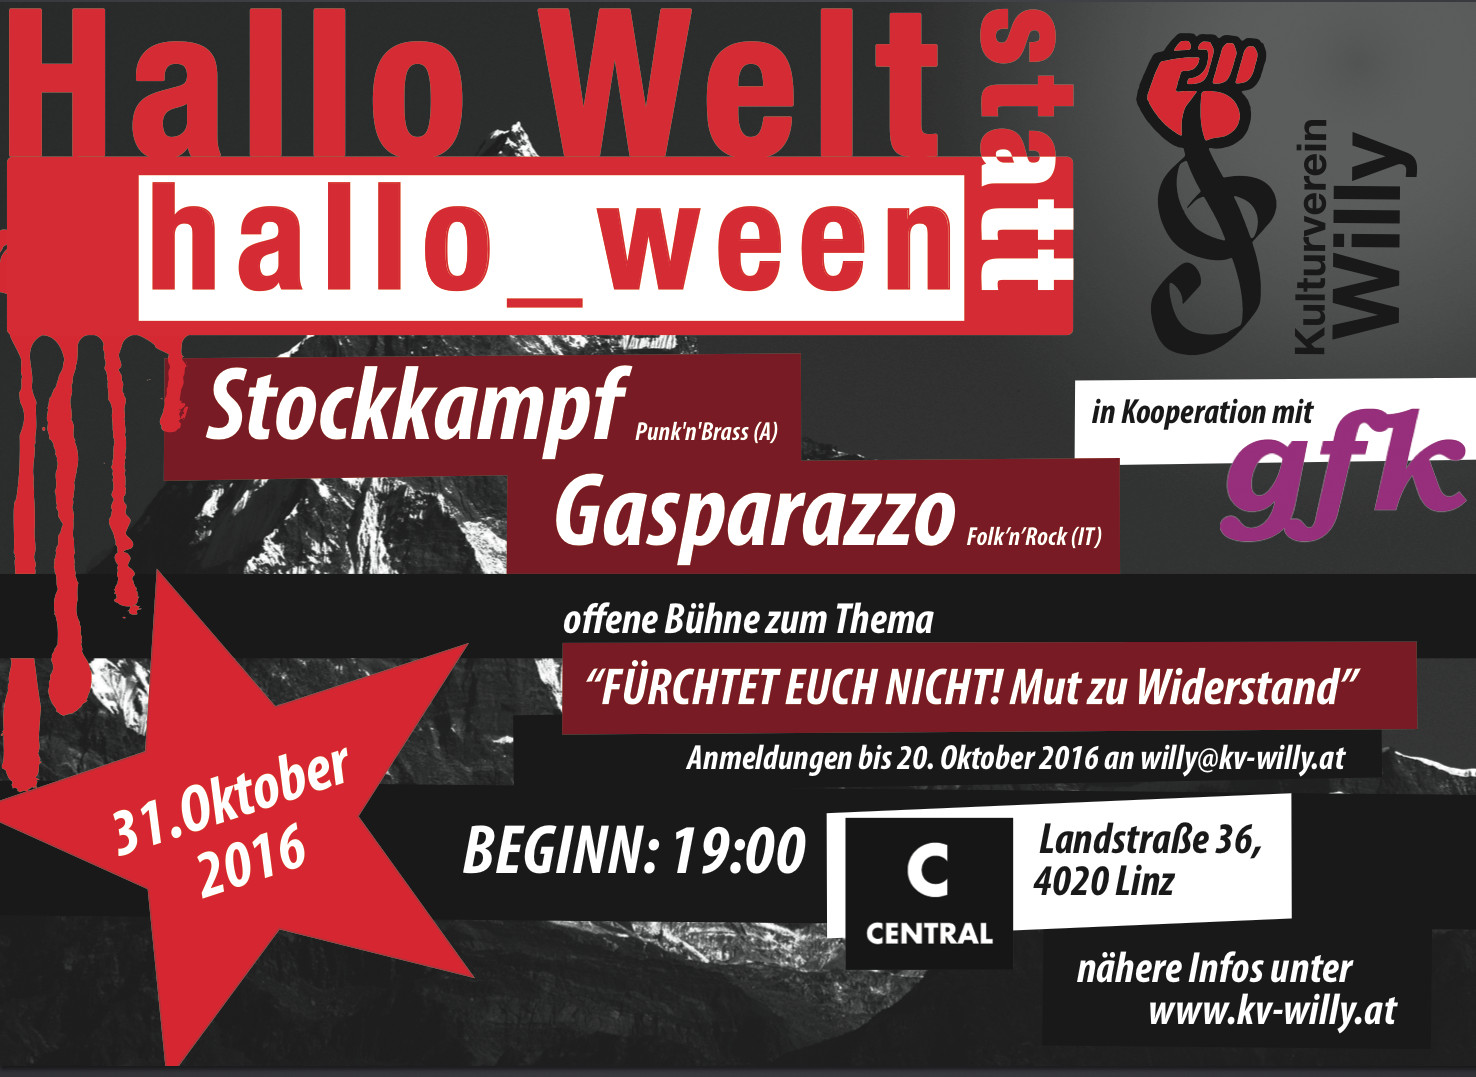 flyer_hallo-welt